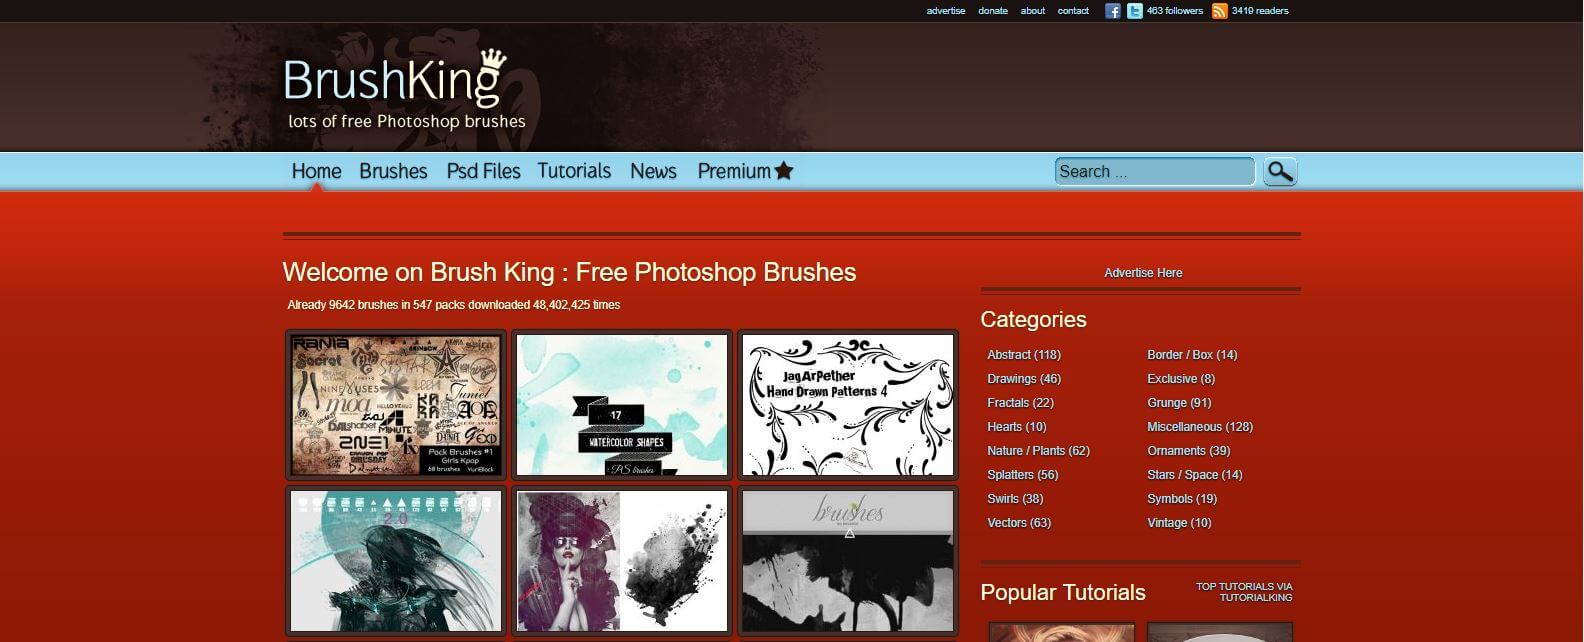 4-4 - Best 14 Websites to Download Free Photoshop Brushes